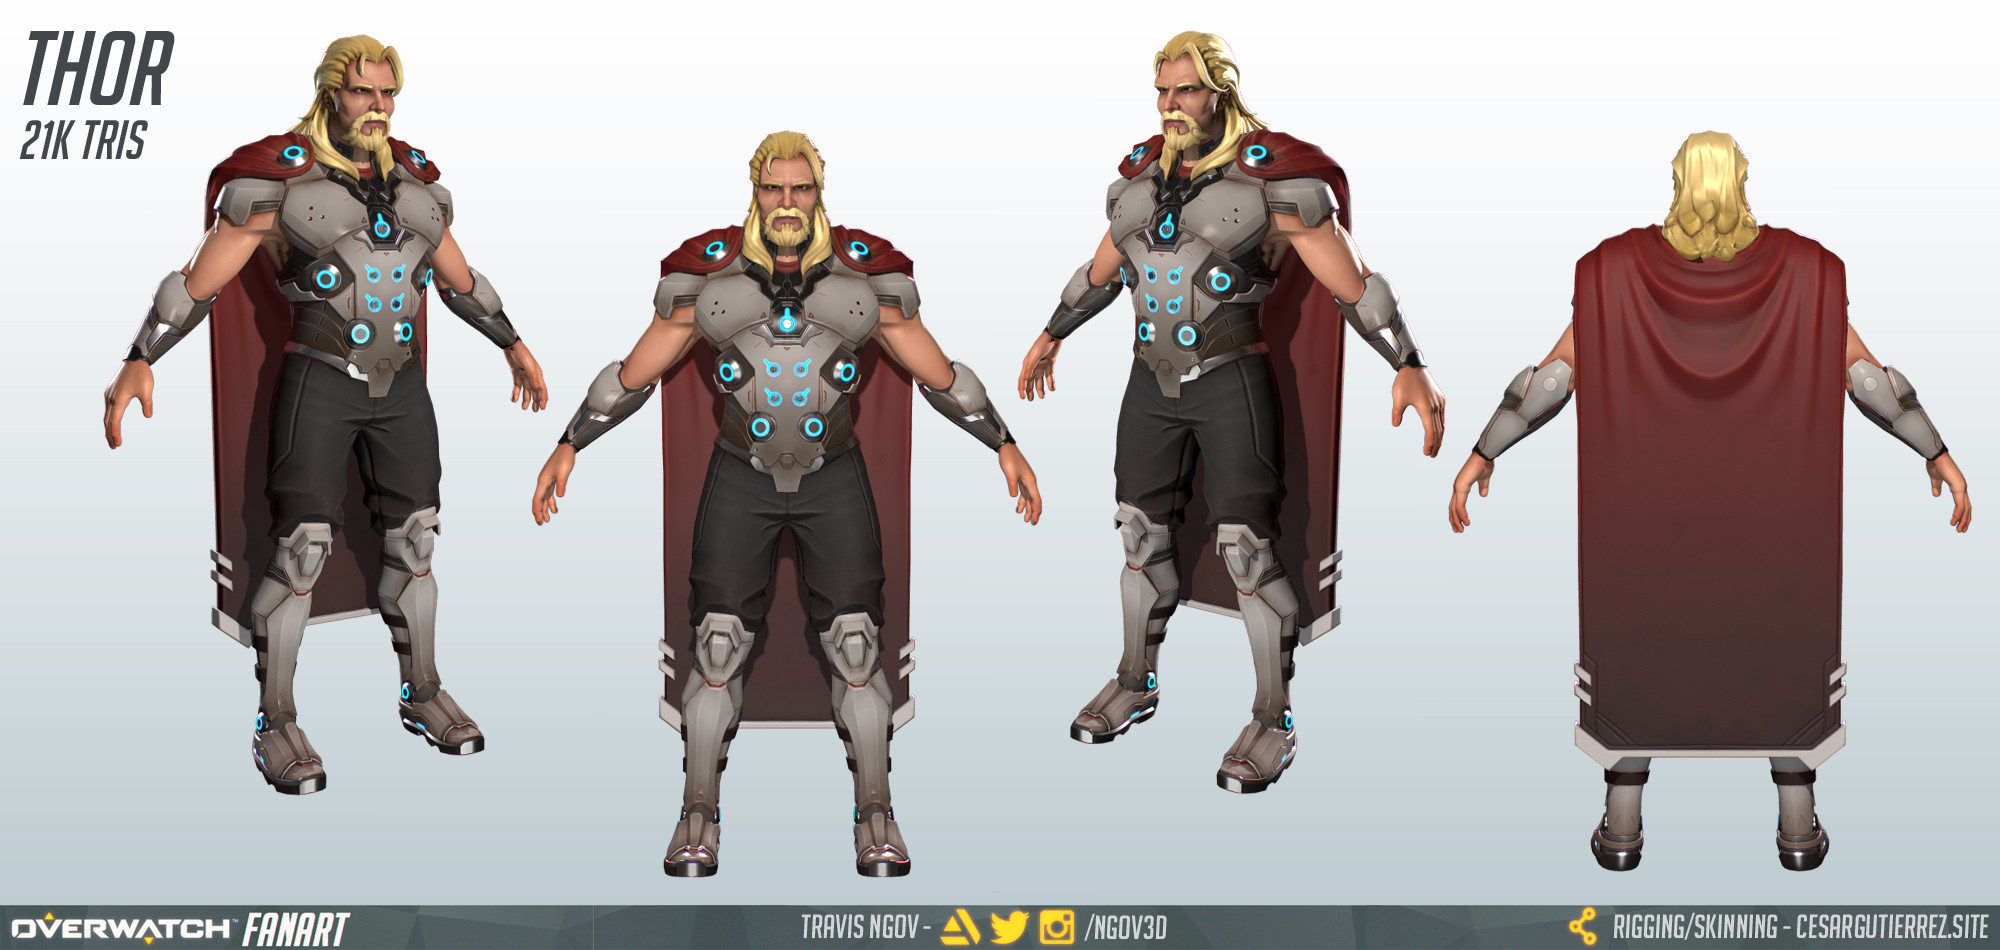 Thor - Turnaround (Tposed)